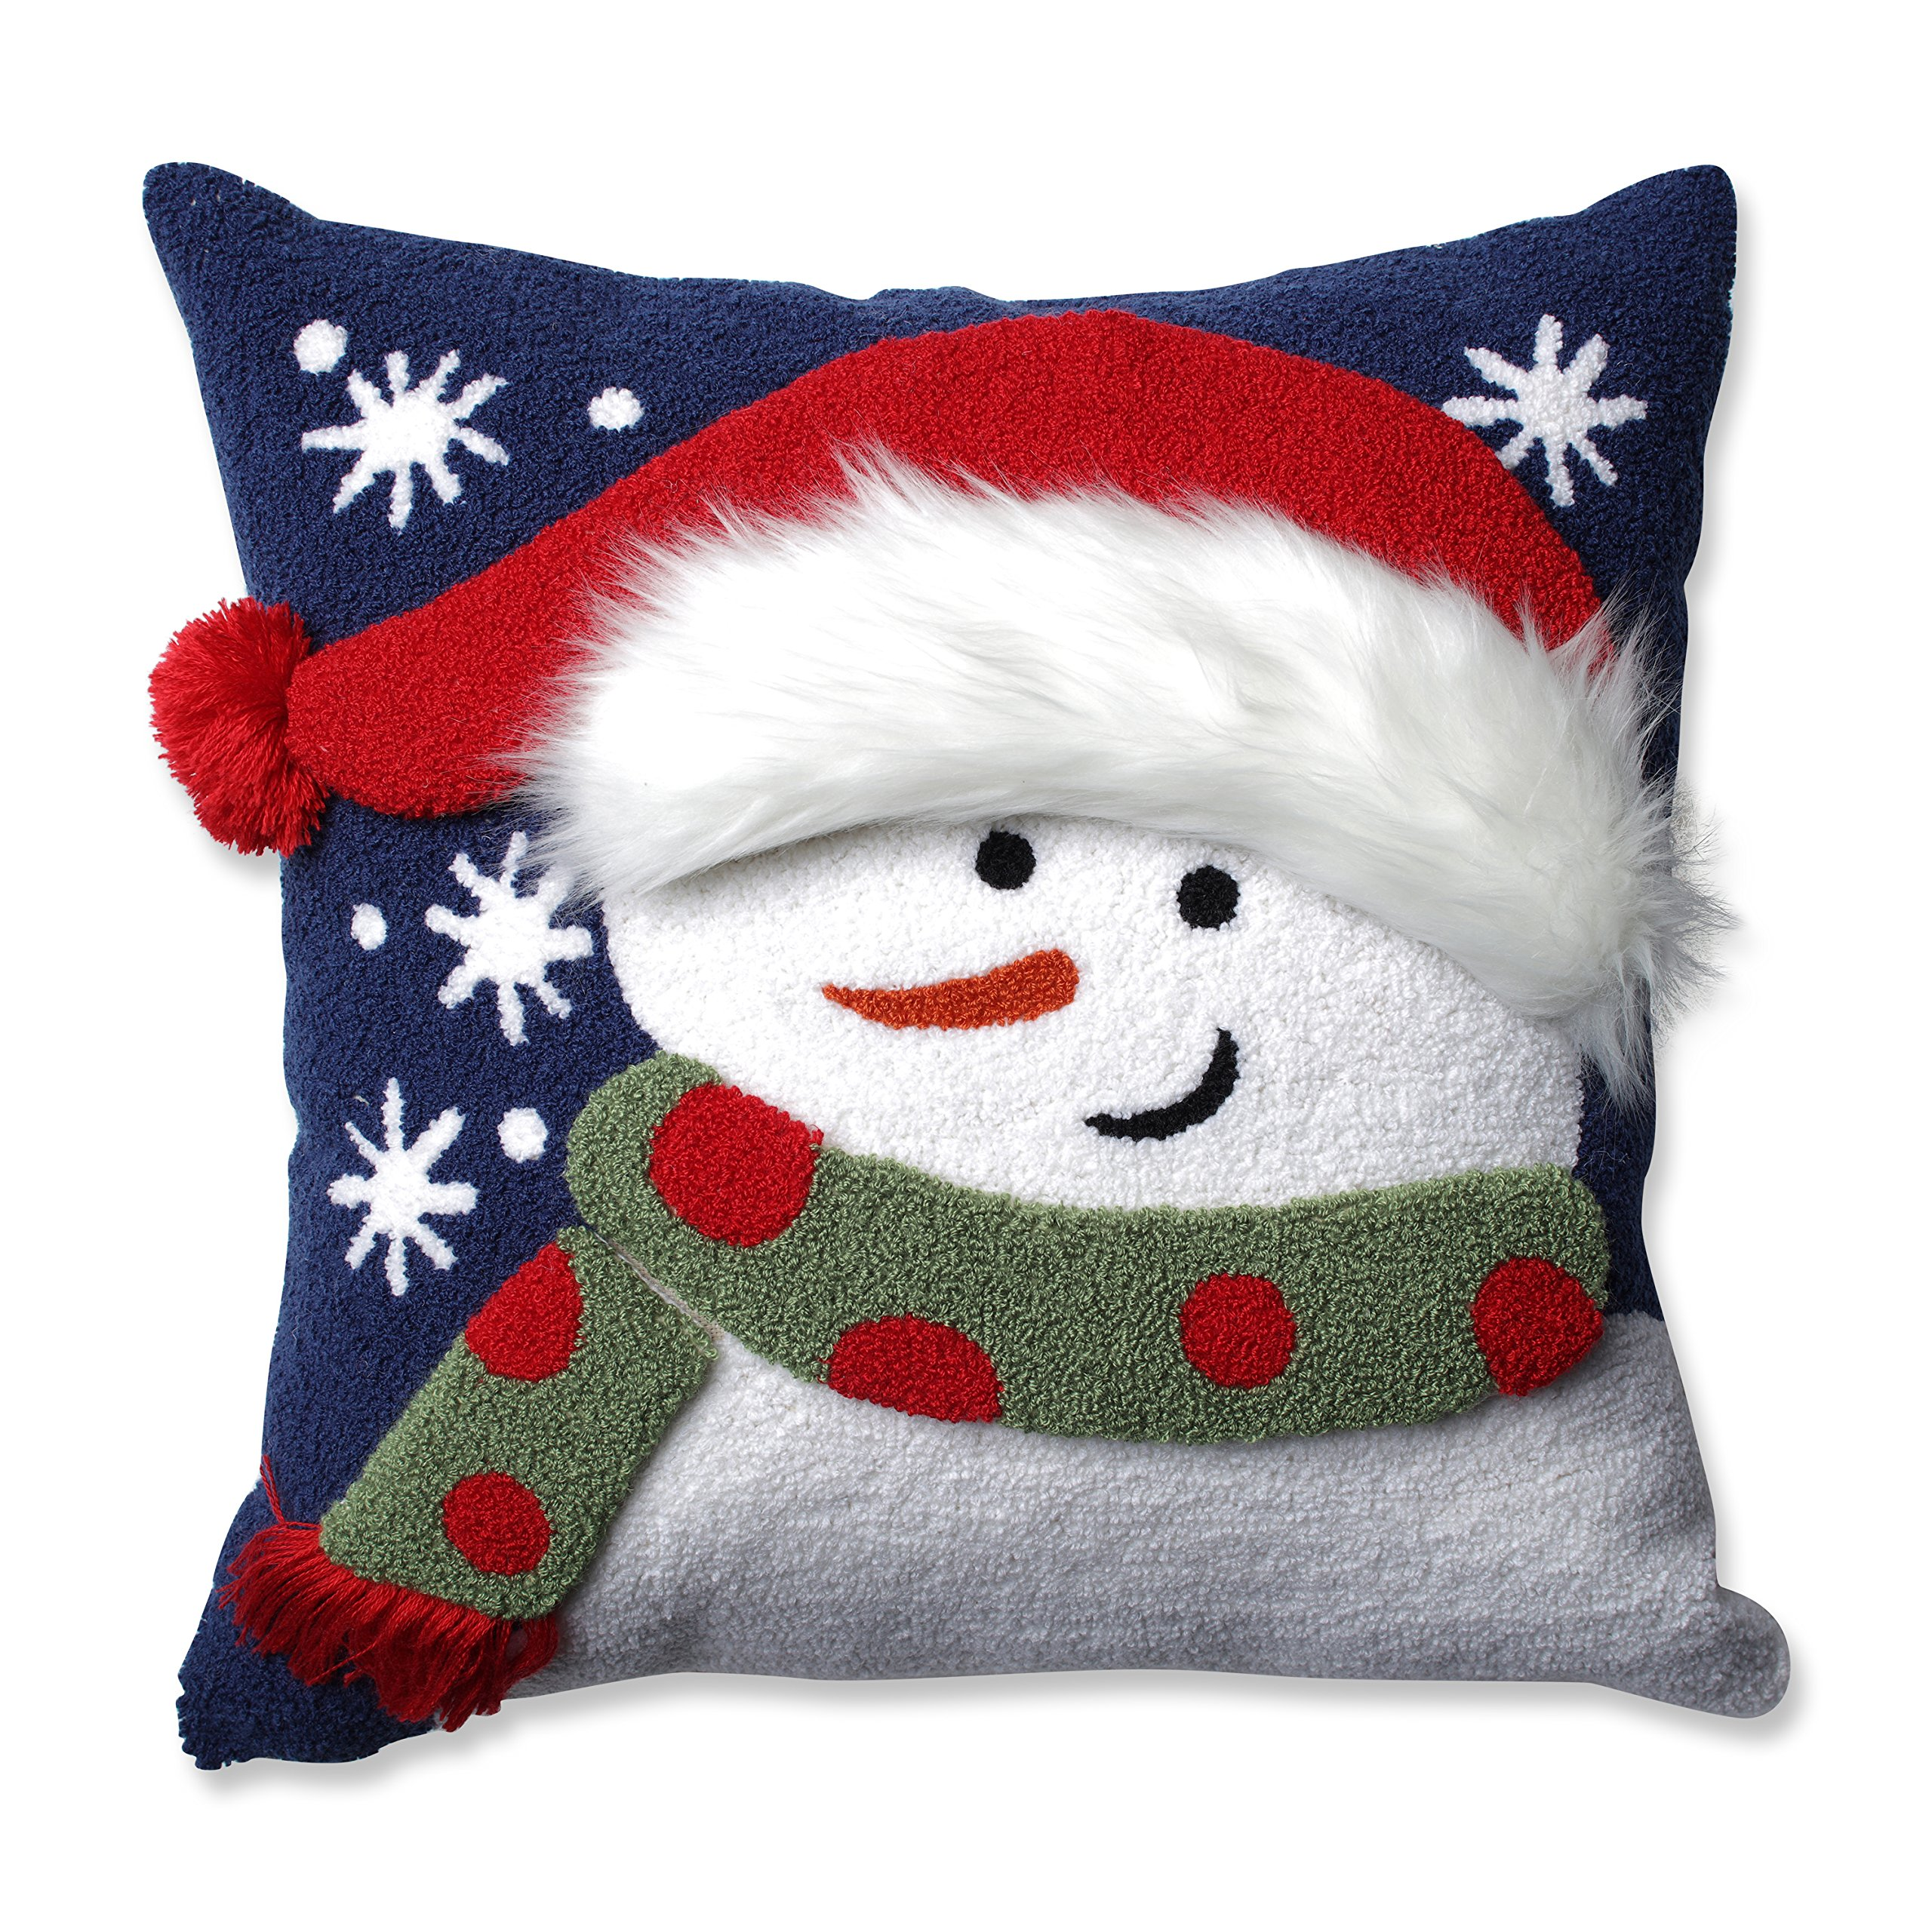 Pillow Perfect Frosty Throw Pillow, 16.5'', Multicolor